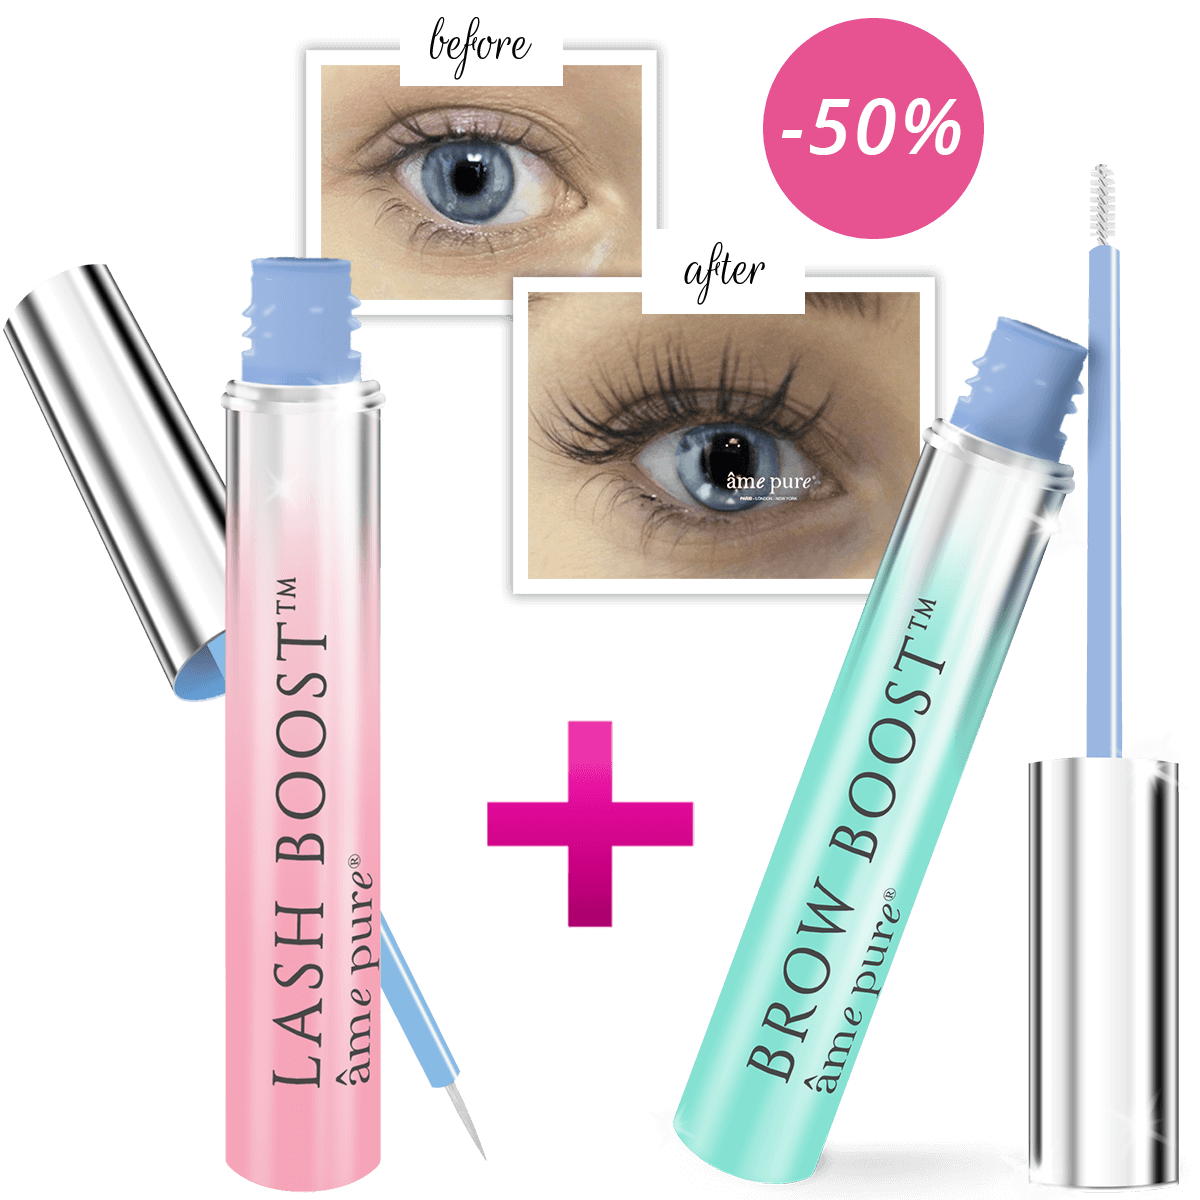 Lash Boost™ + Brow Boost™ Eyelash & Eyebrow Growth Serum